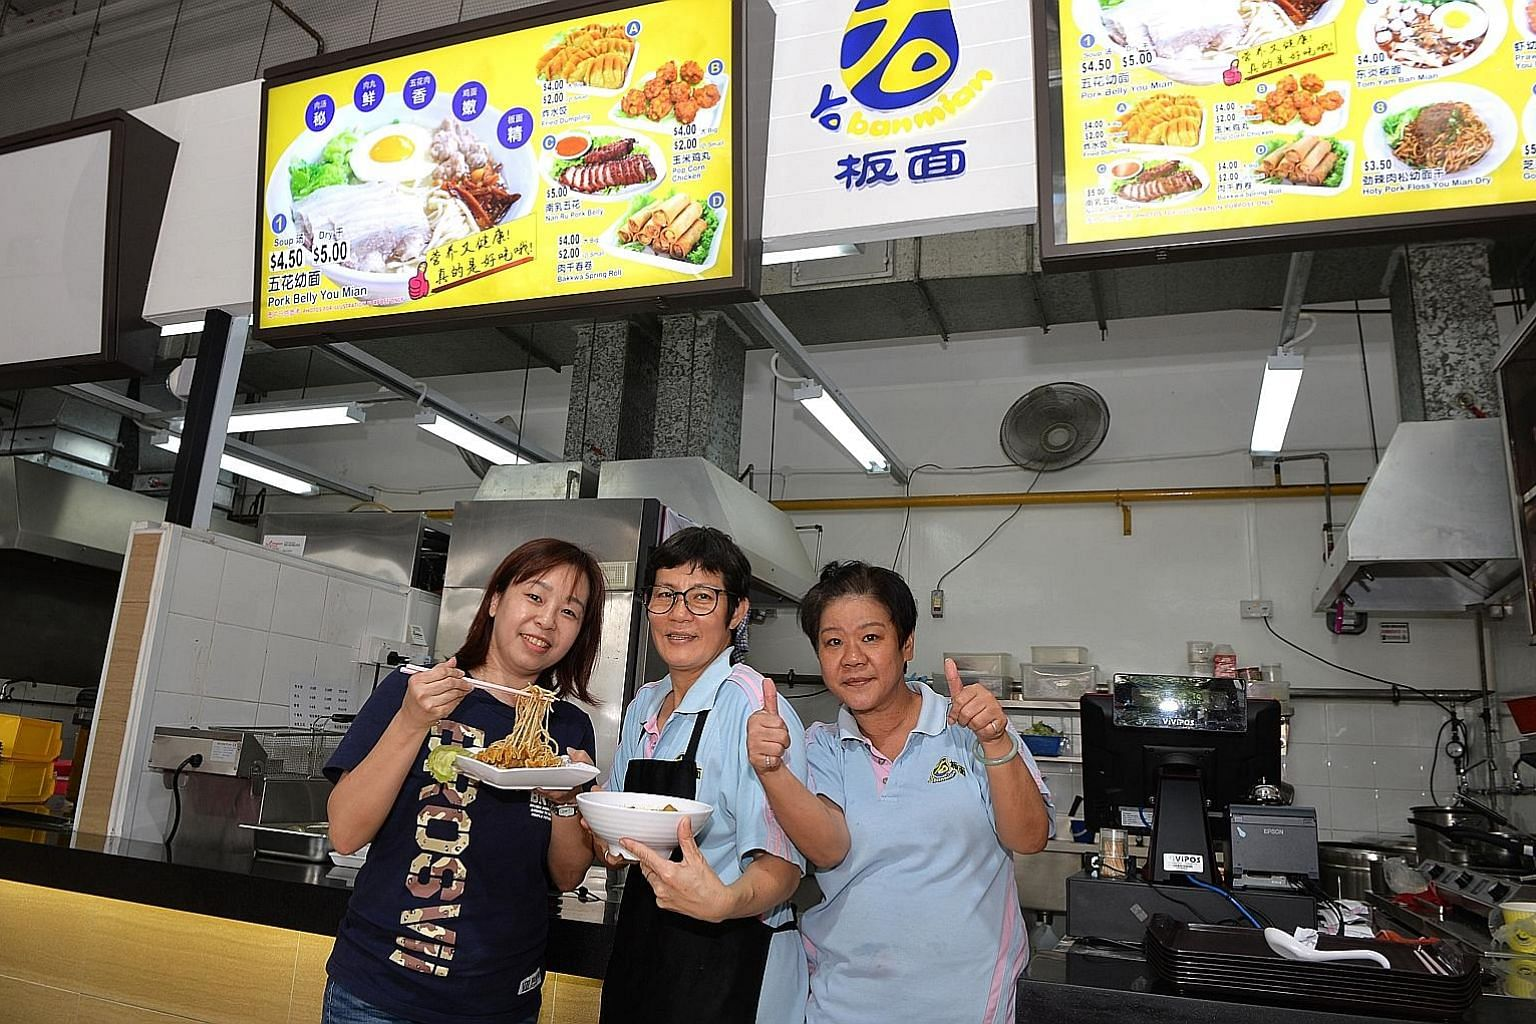 (From left) Yobanmian's assistant manager Ivy Tan with her co-workers, Ms Yu Lay Hong and Ms Lim Seok Tin, at the Senoko outlet.